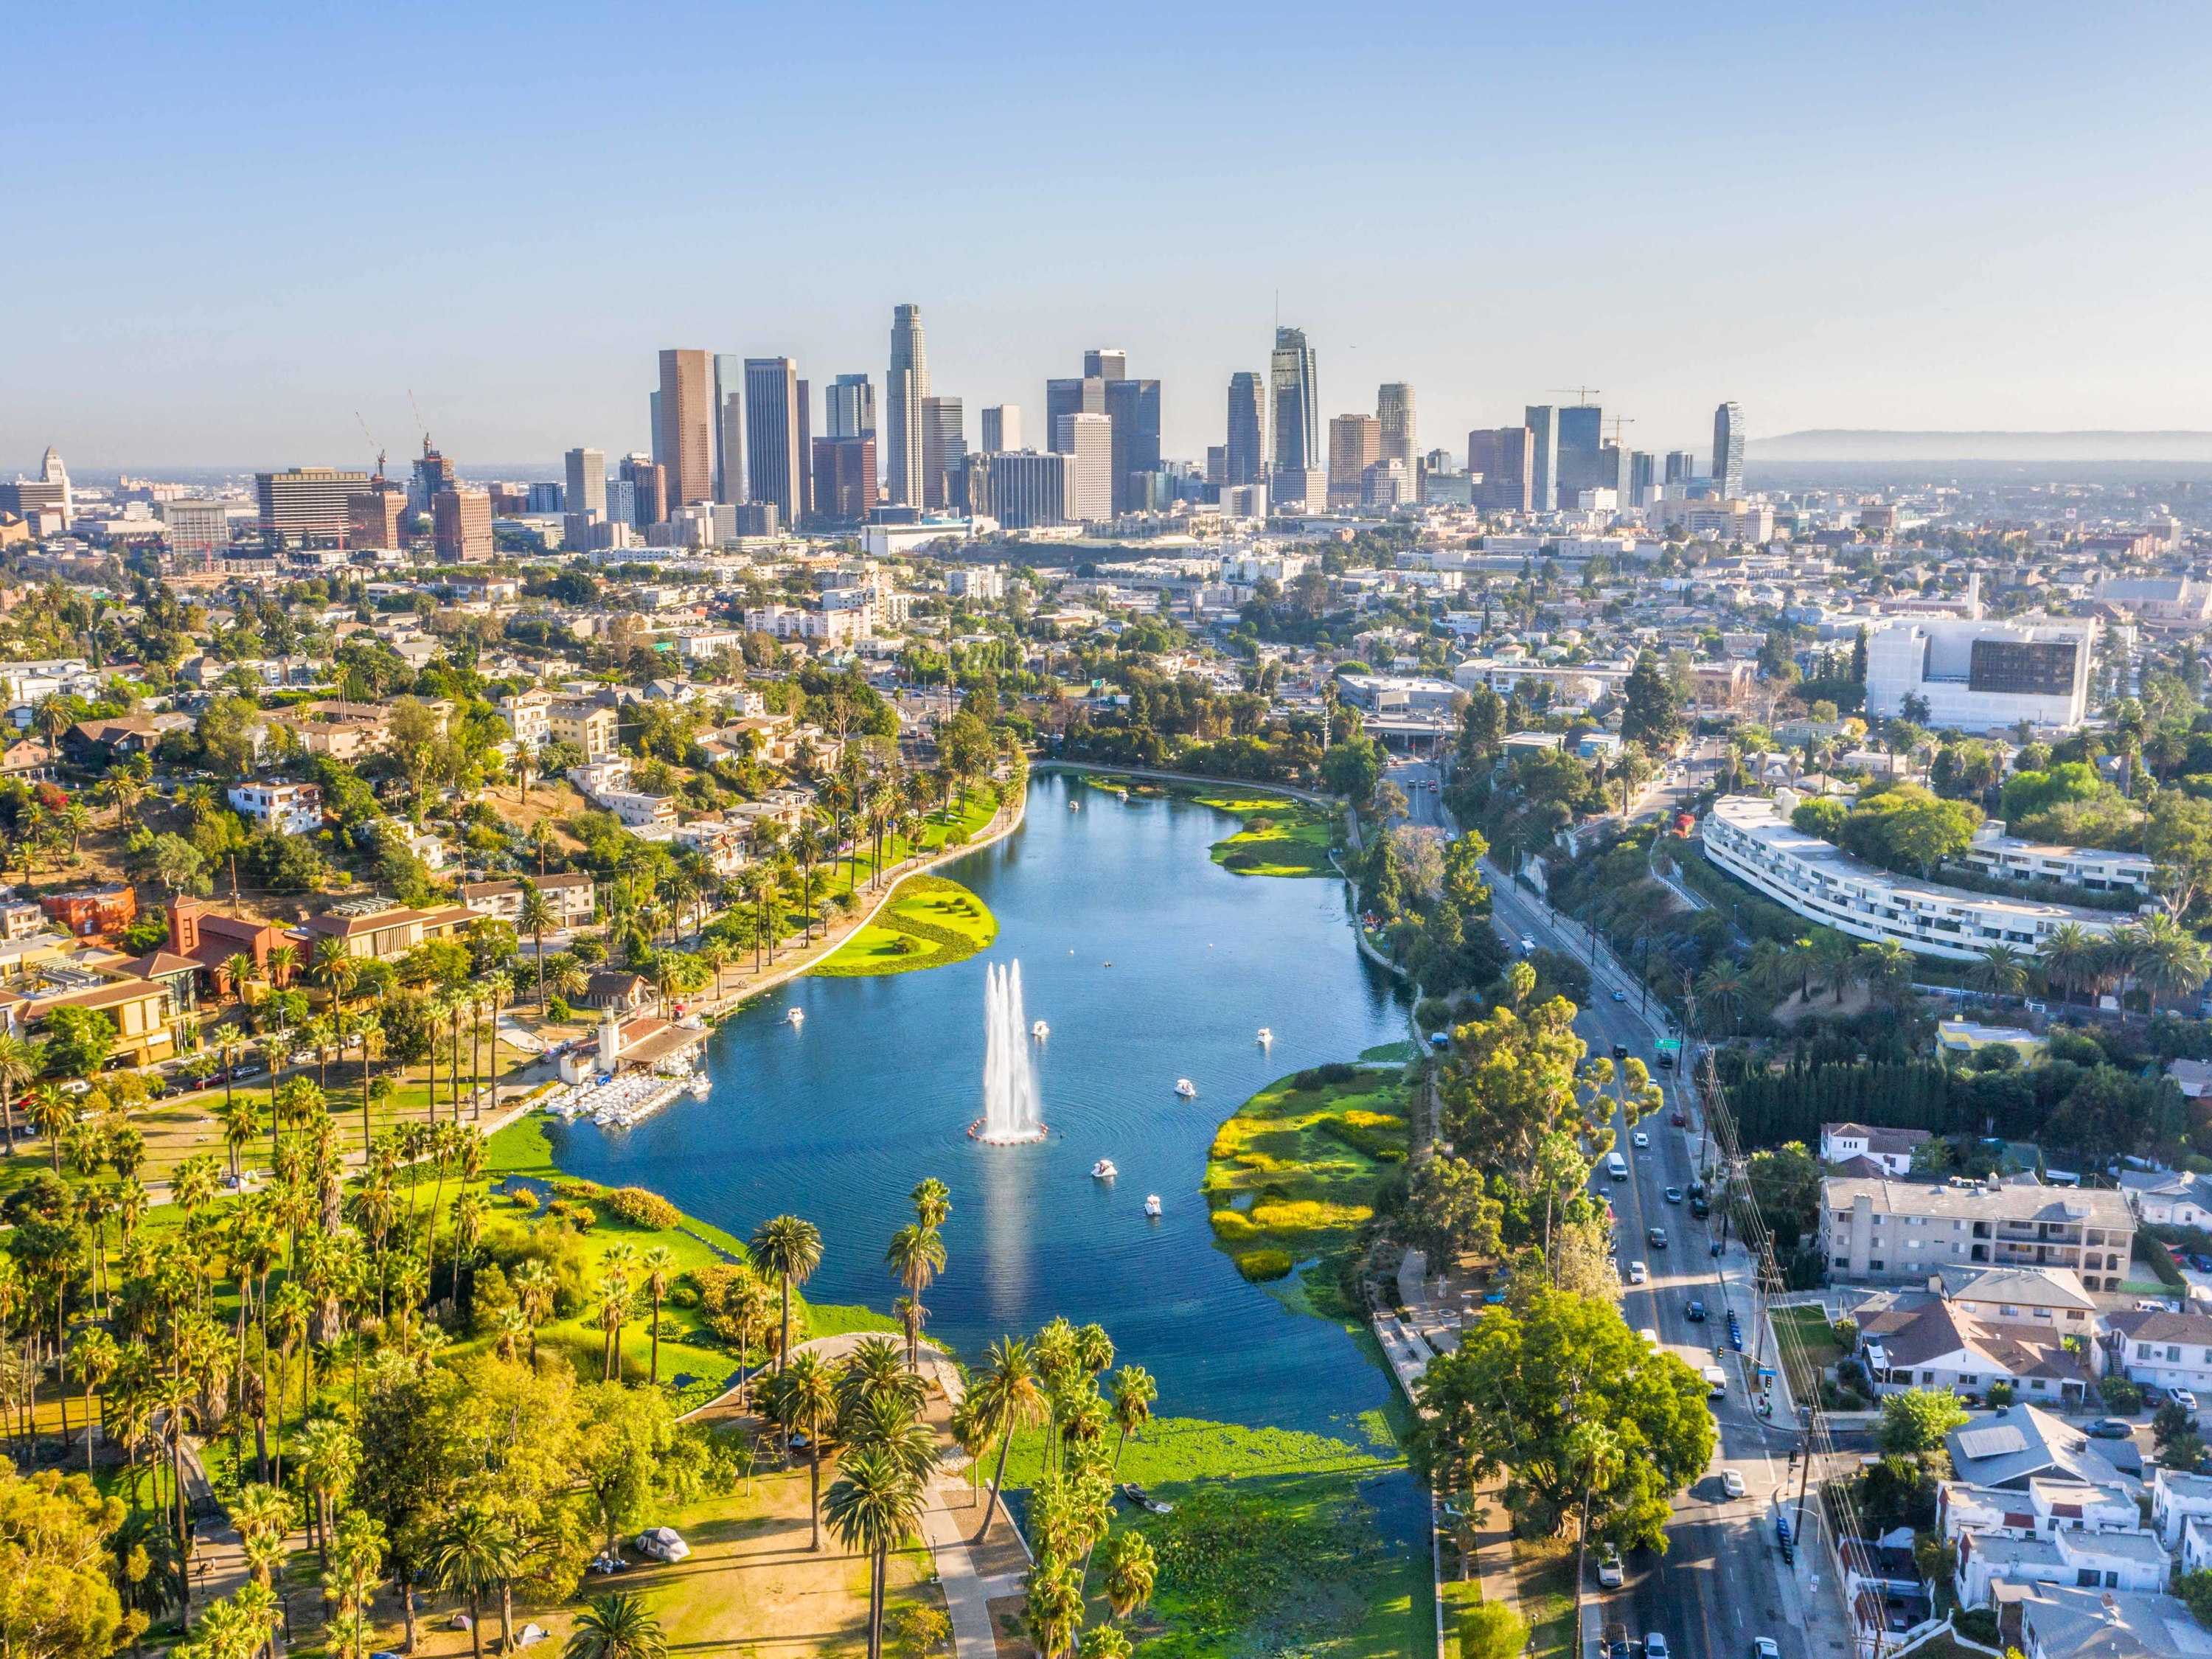 Time Out is hosting a virtual small business festival in Los Angeles